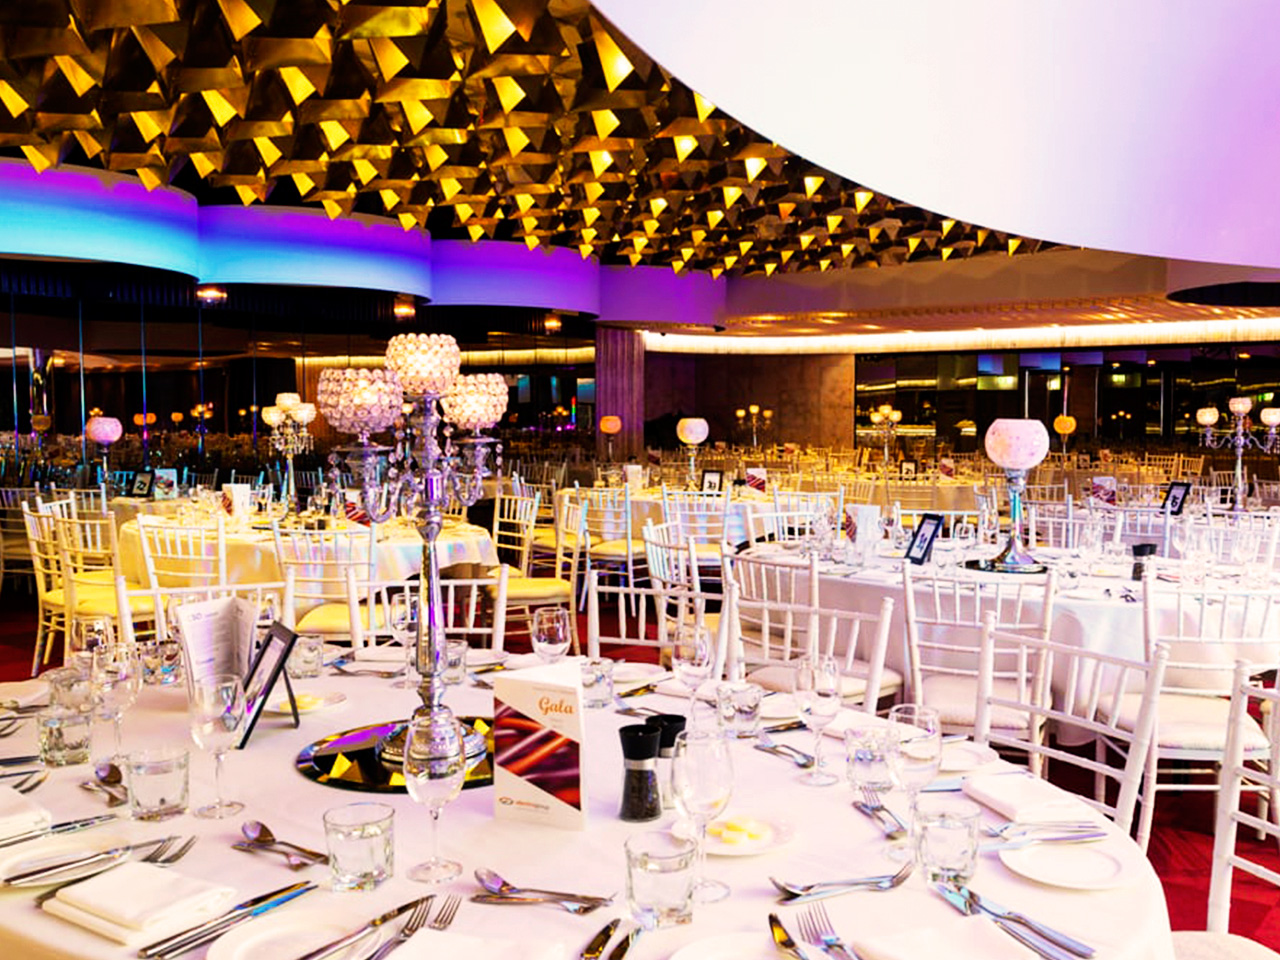 Round white tables set for an event